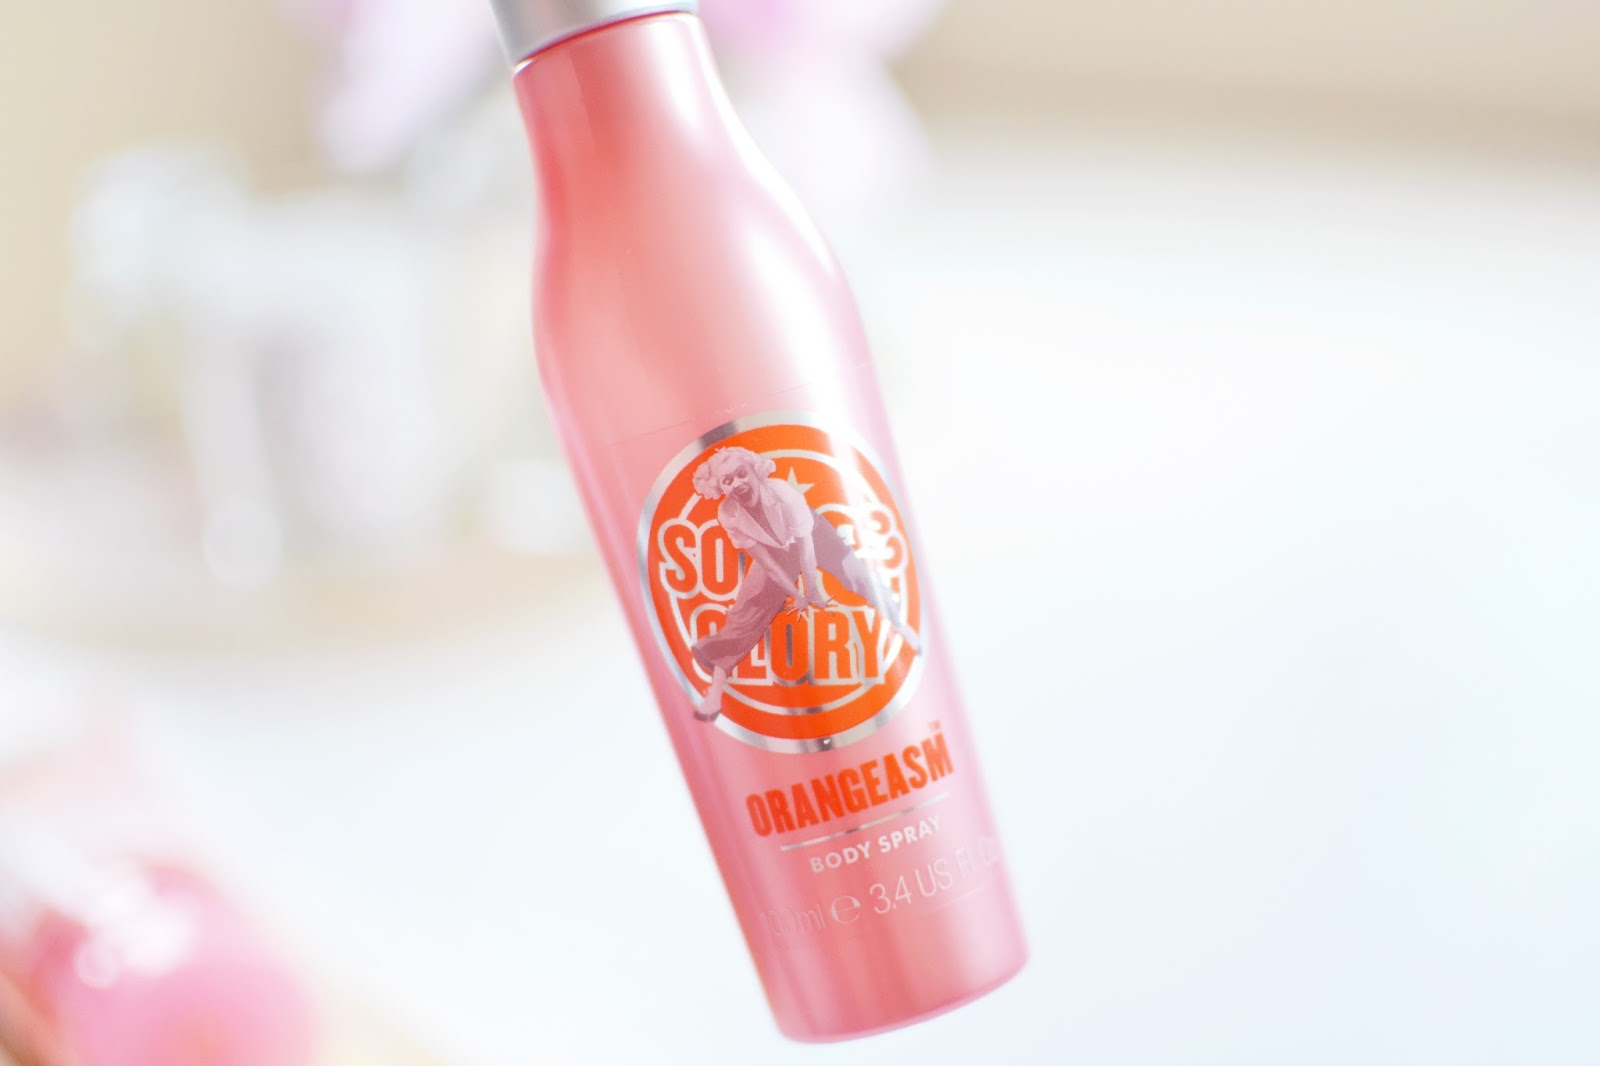 Soap&Glory Orangeasm Body Spray